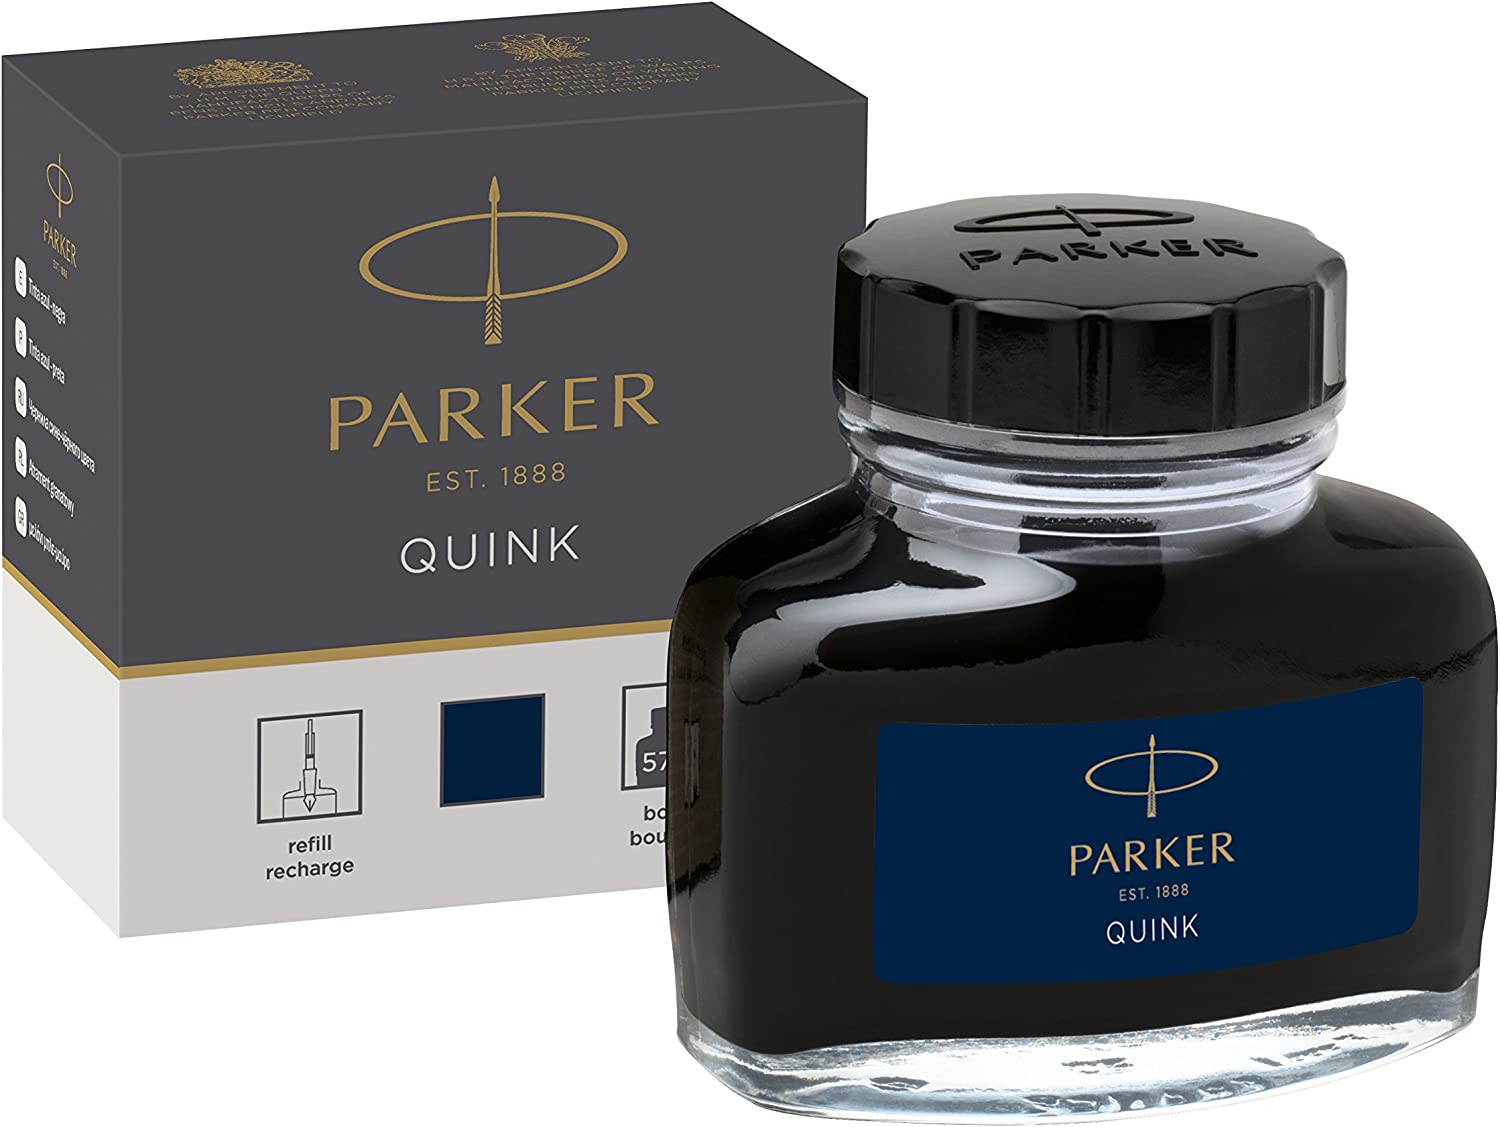 PARKER QUINK Ink Bottle for Fountain Pens